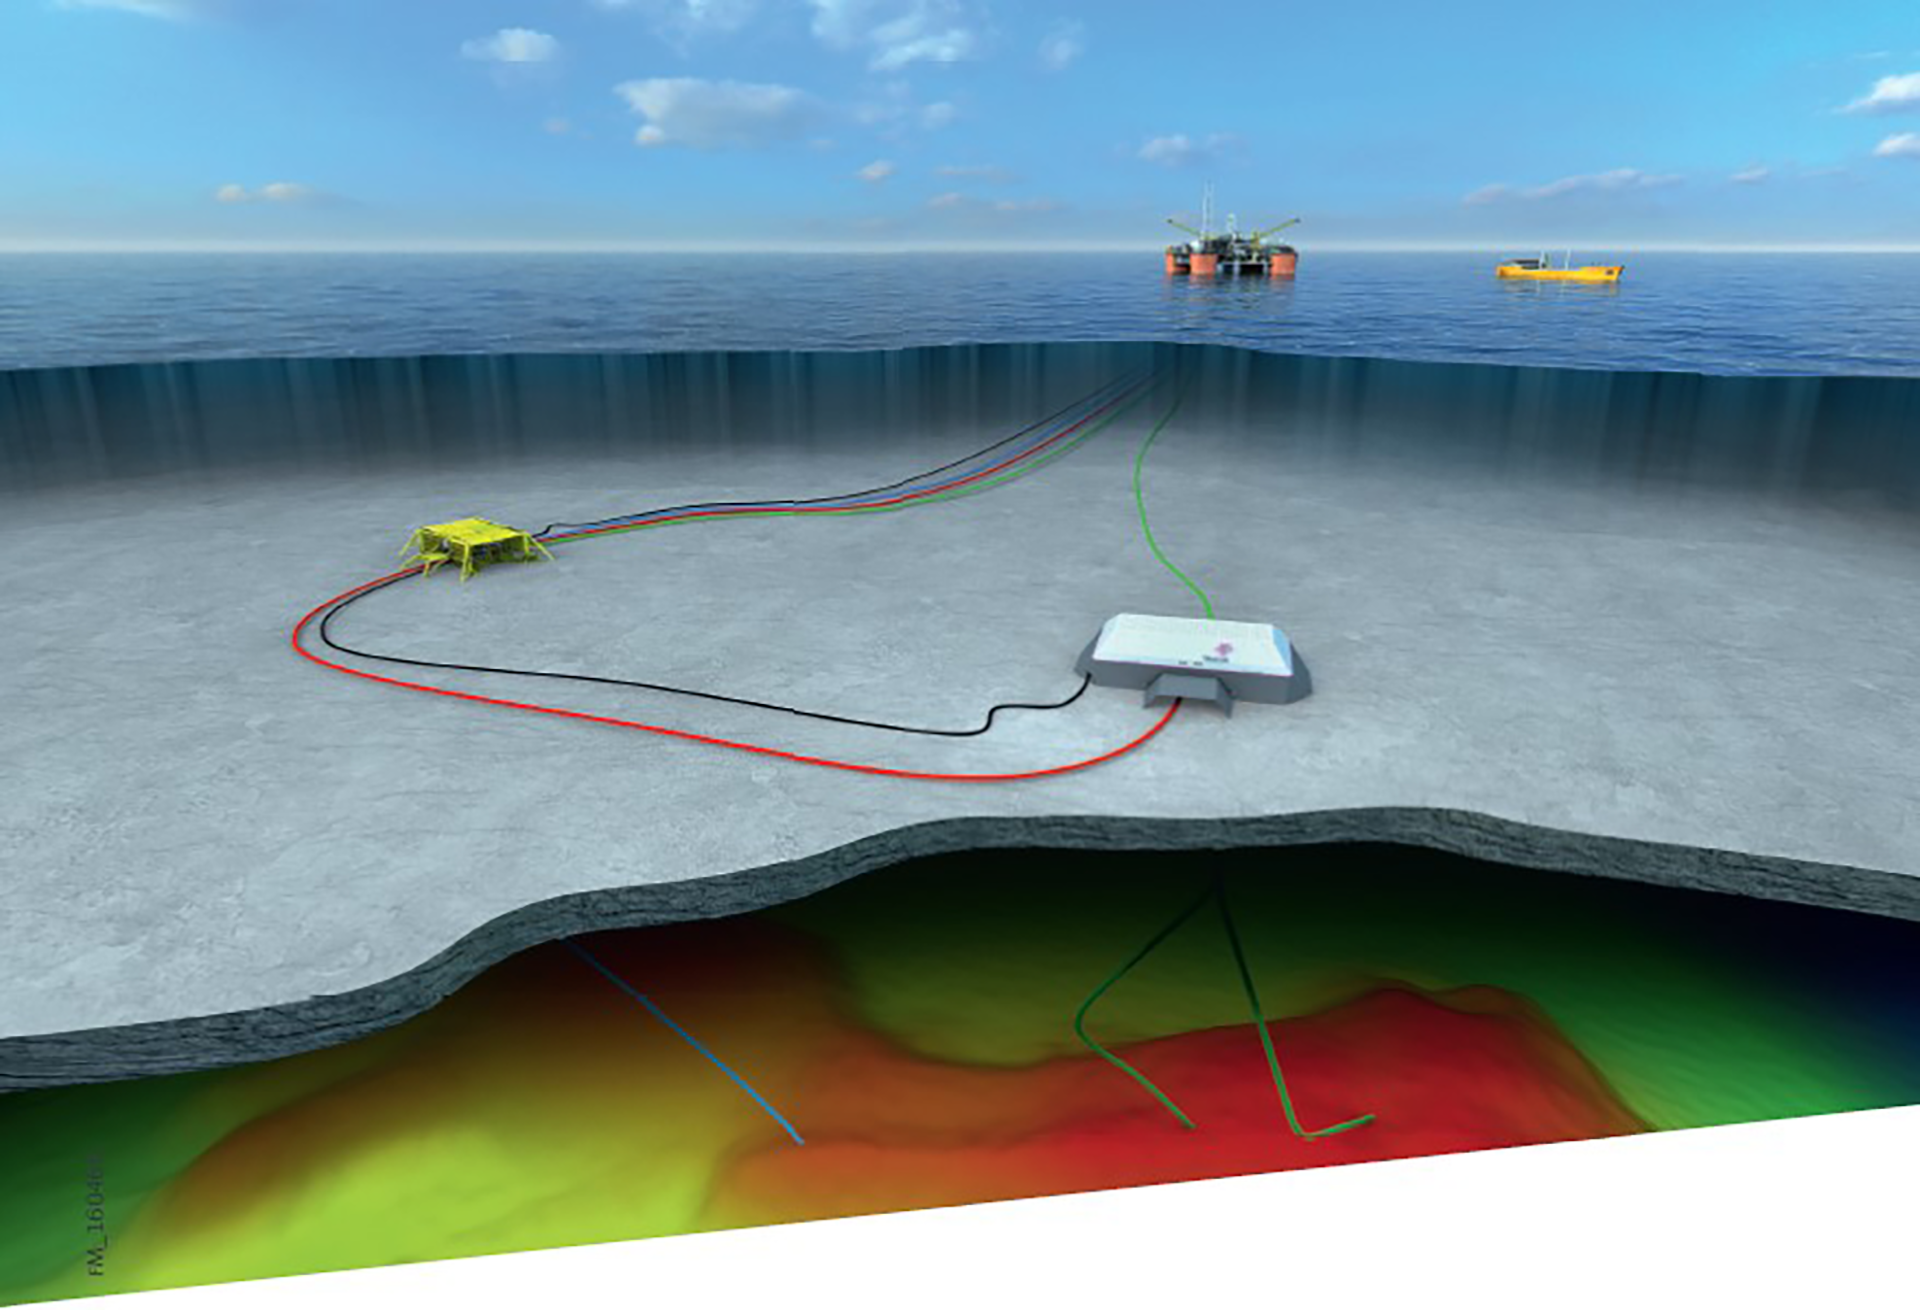 The Bauge discovery will be tied in to the upgraded Njord field with planned start-up in 2020. Anticipated investments are NOK 19.8 billion. (Illustration: Statoil)